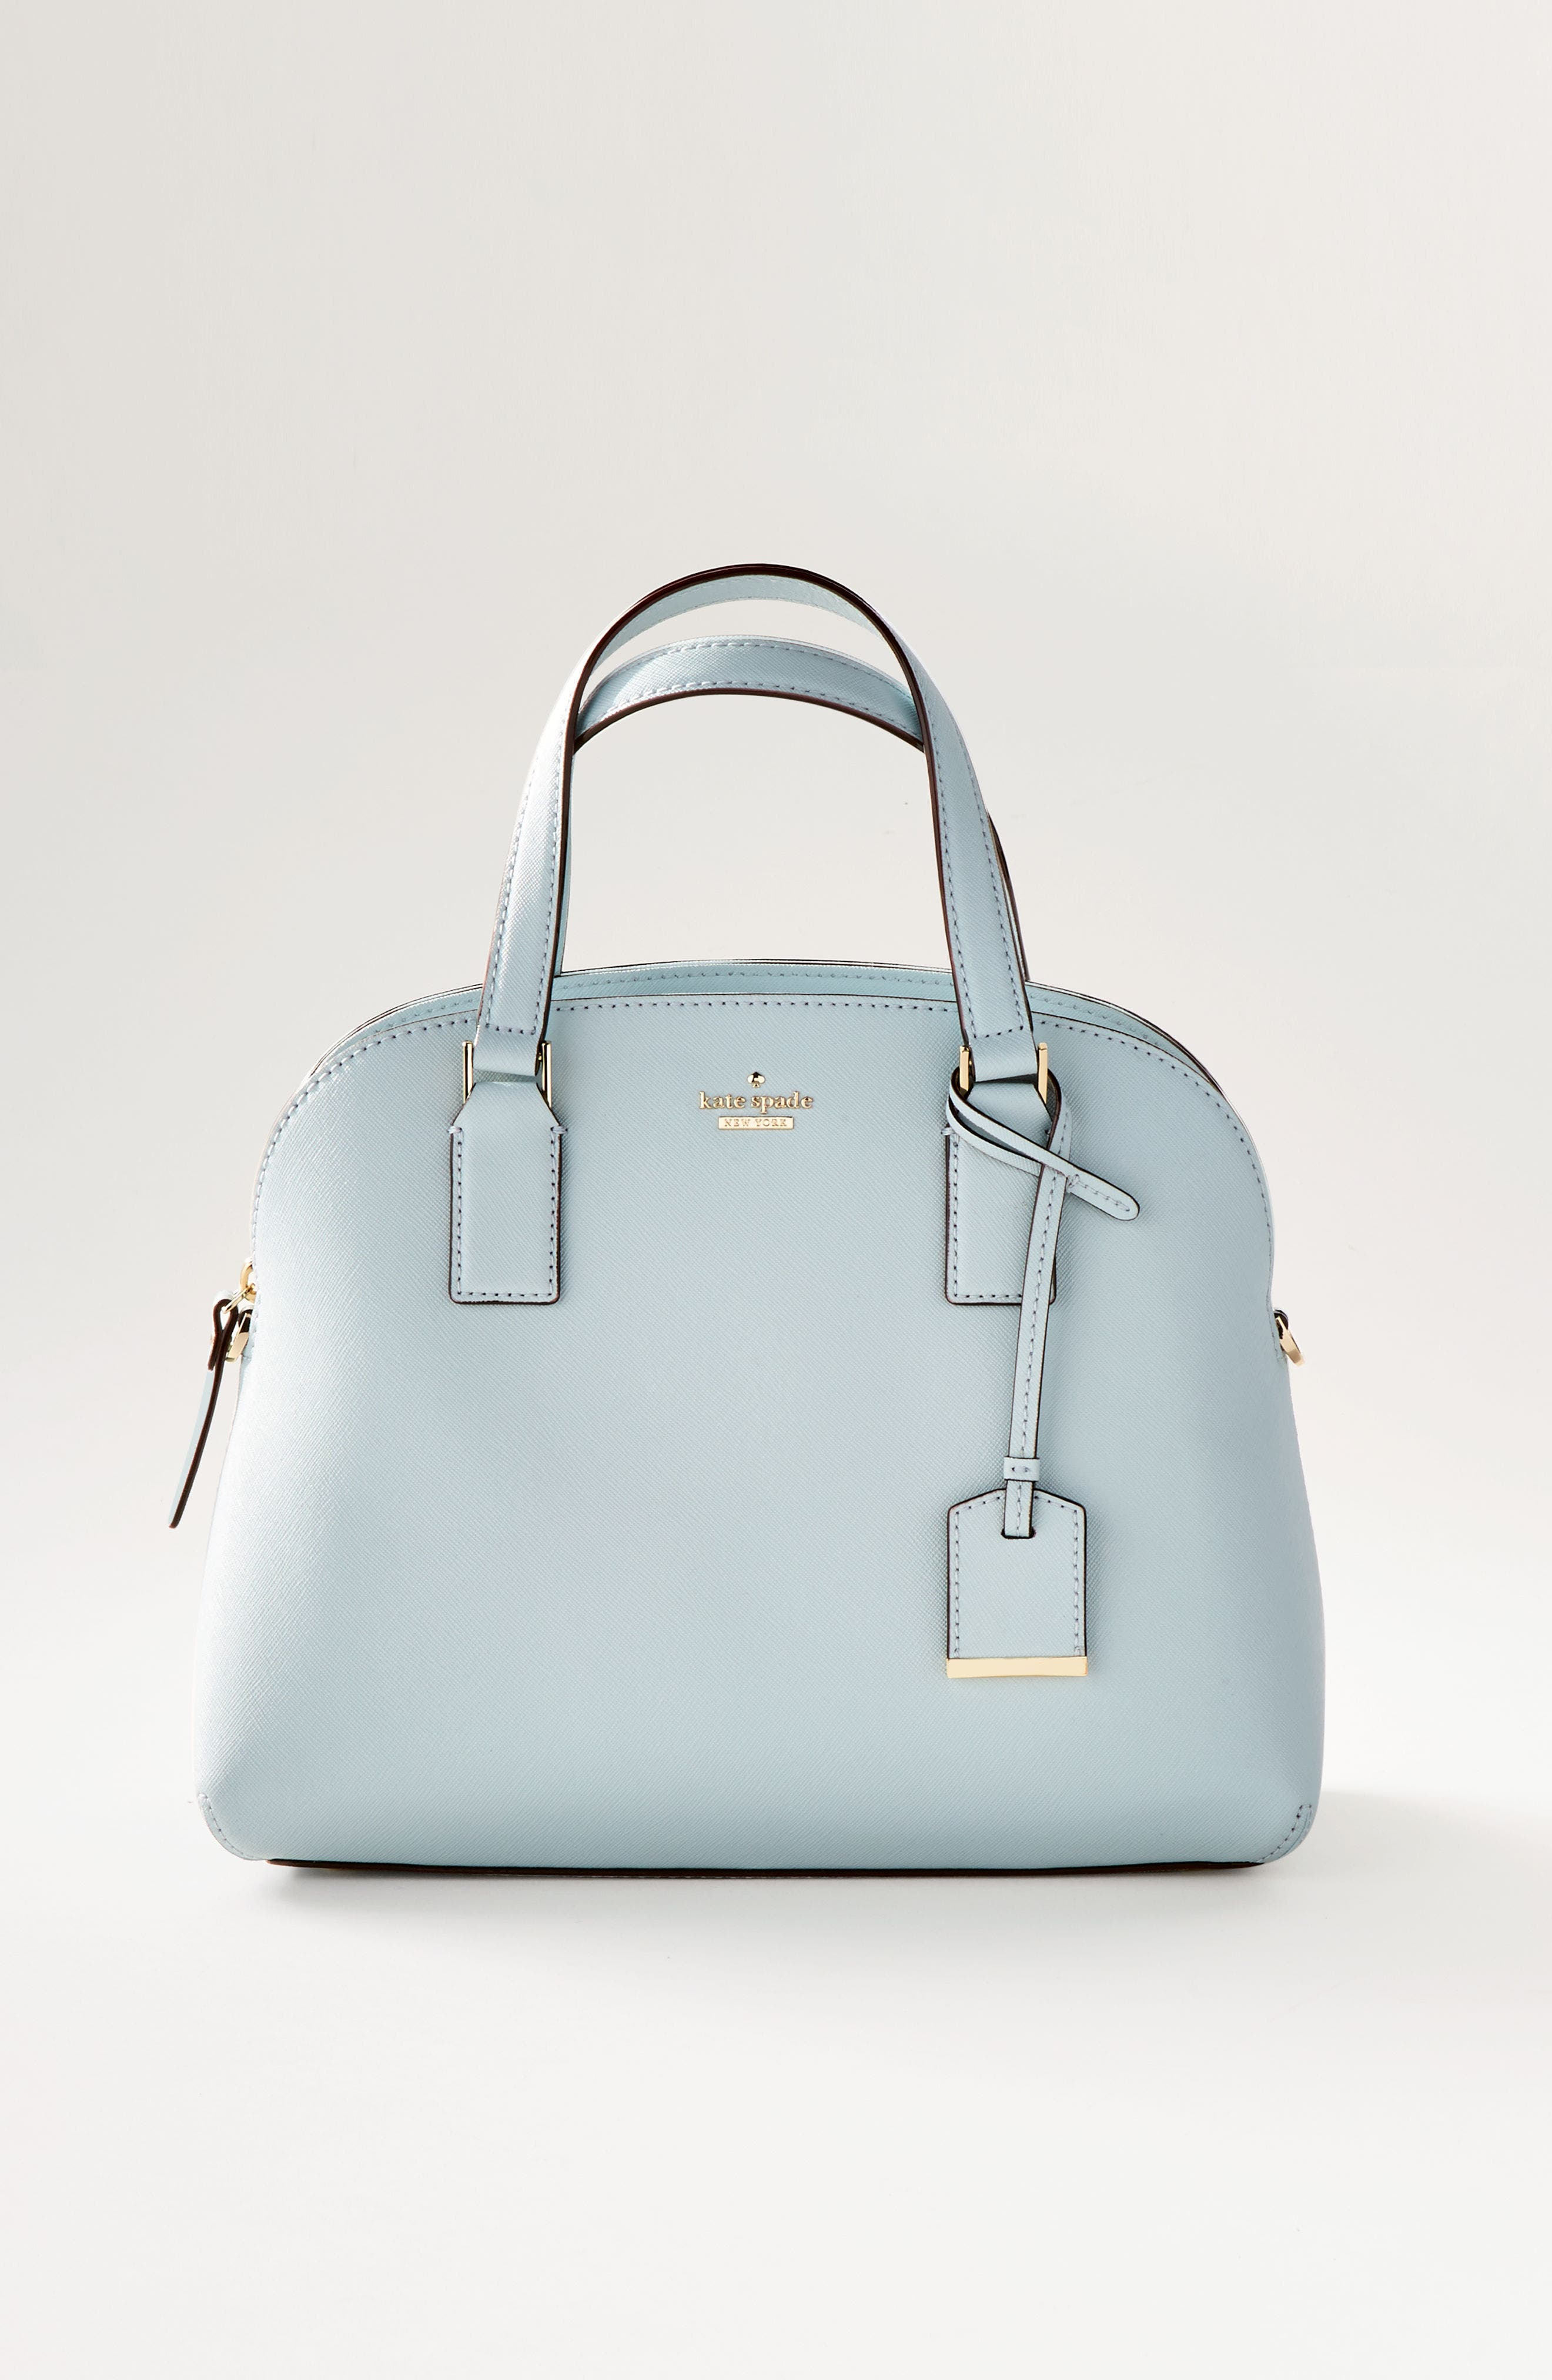 cameron street - lottie leather satchel,                             Alternate thumbnail 9, color,                             001